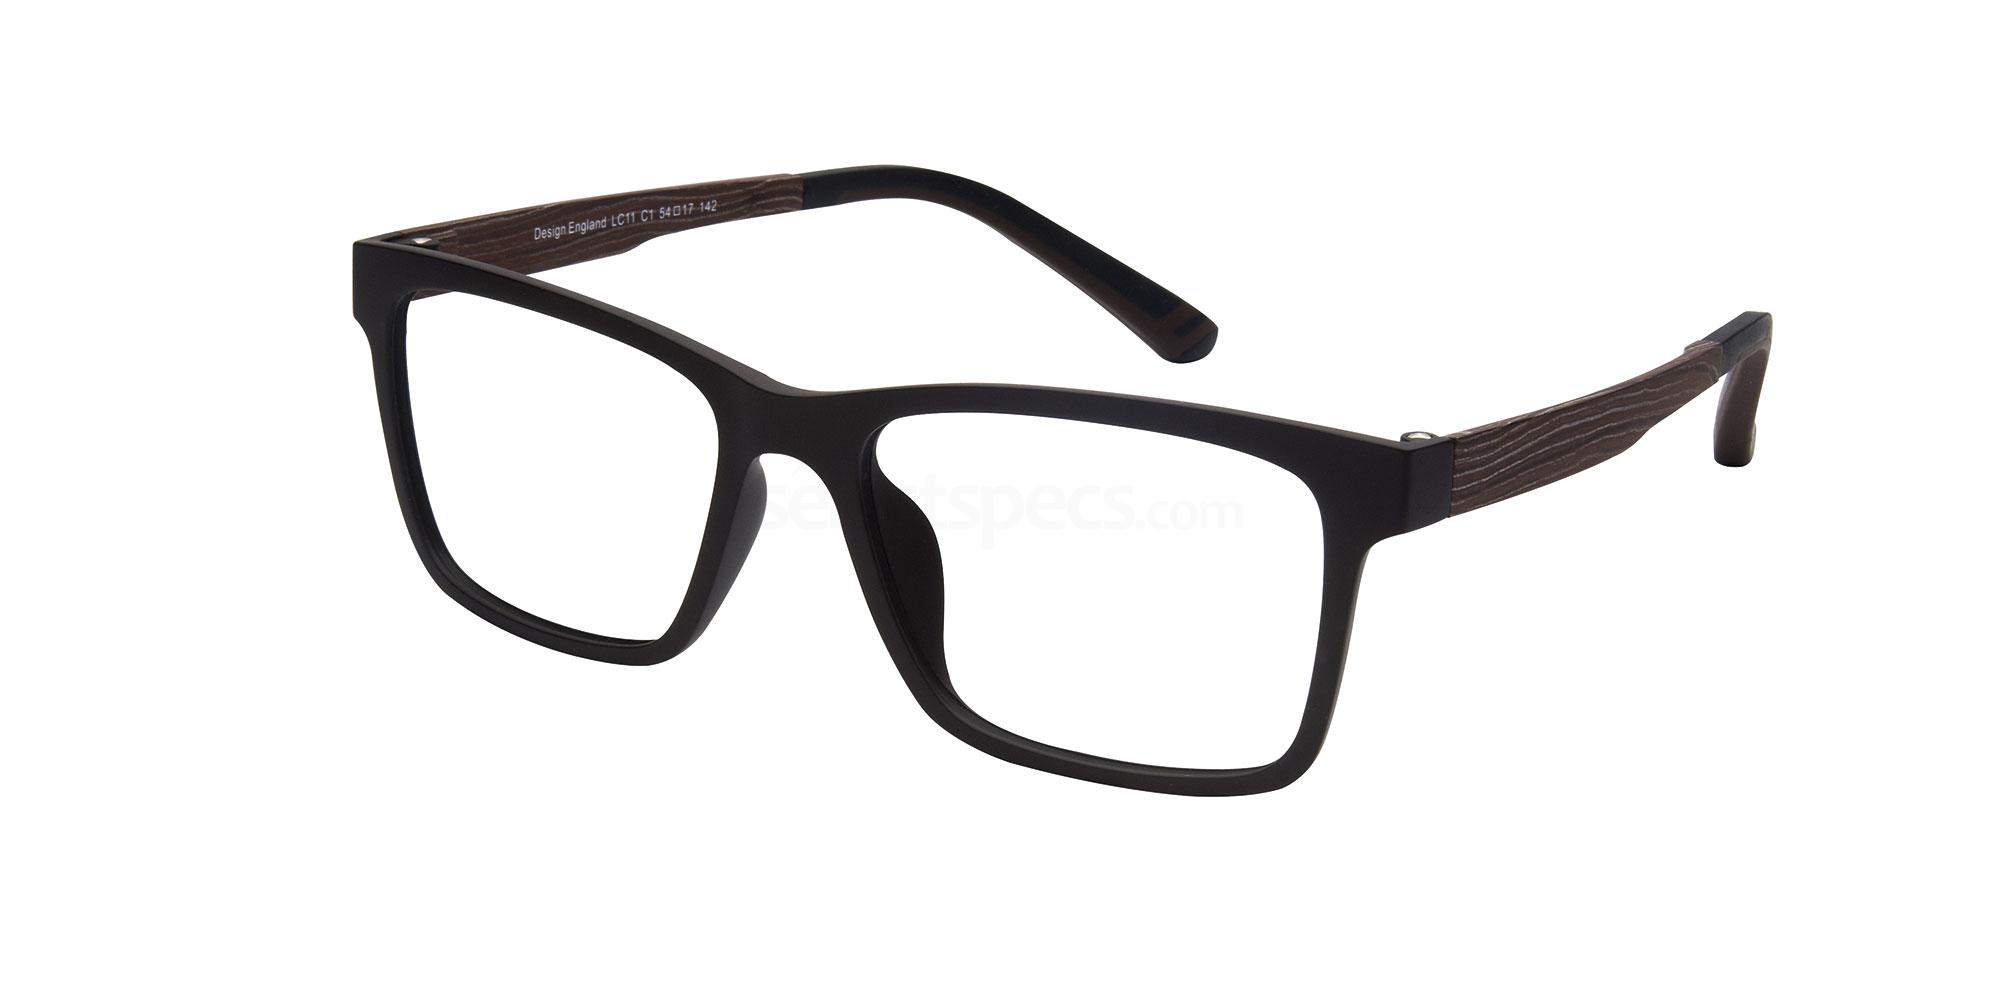 C1 LC11 - with Clip On Glasses, London Club